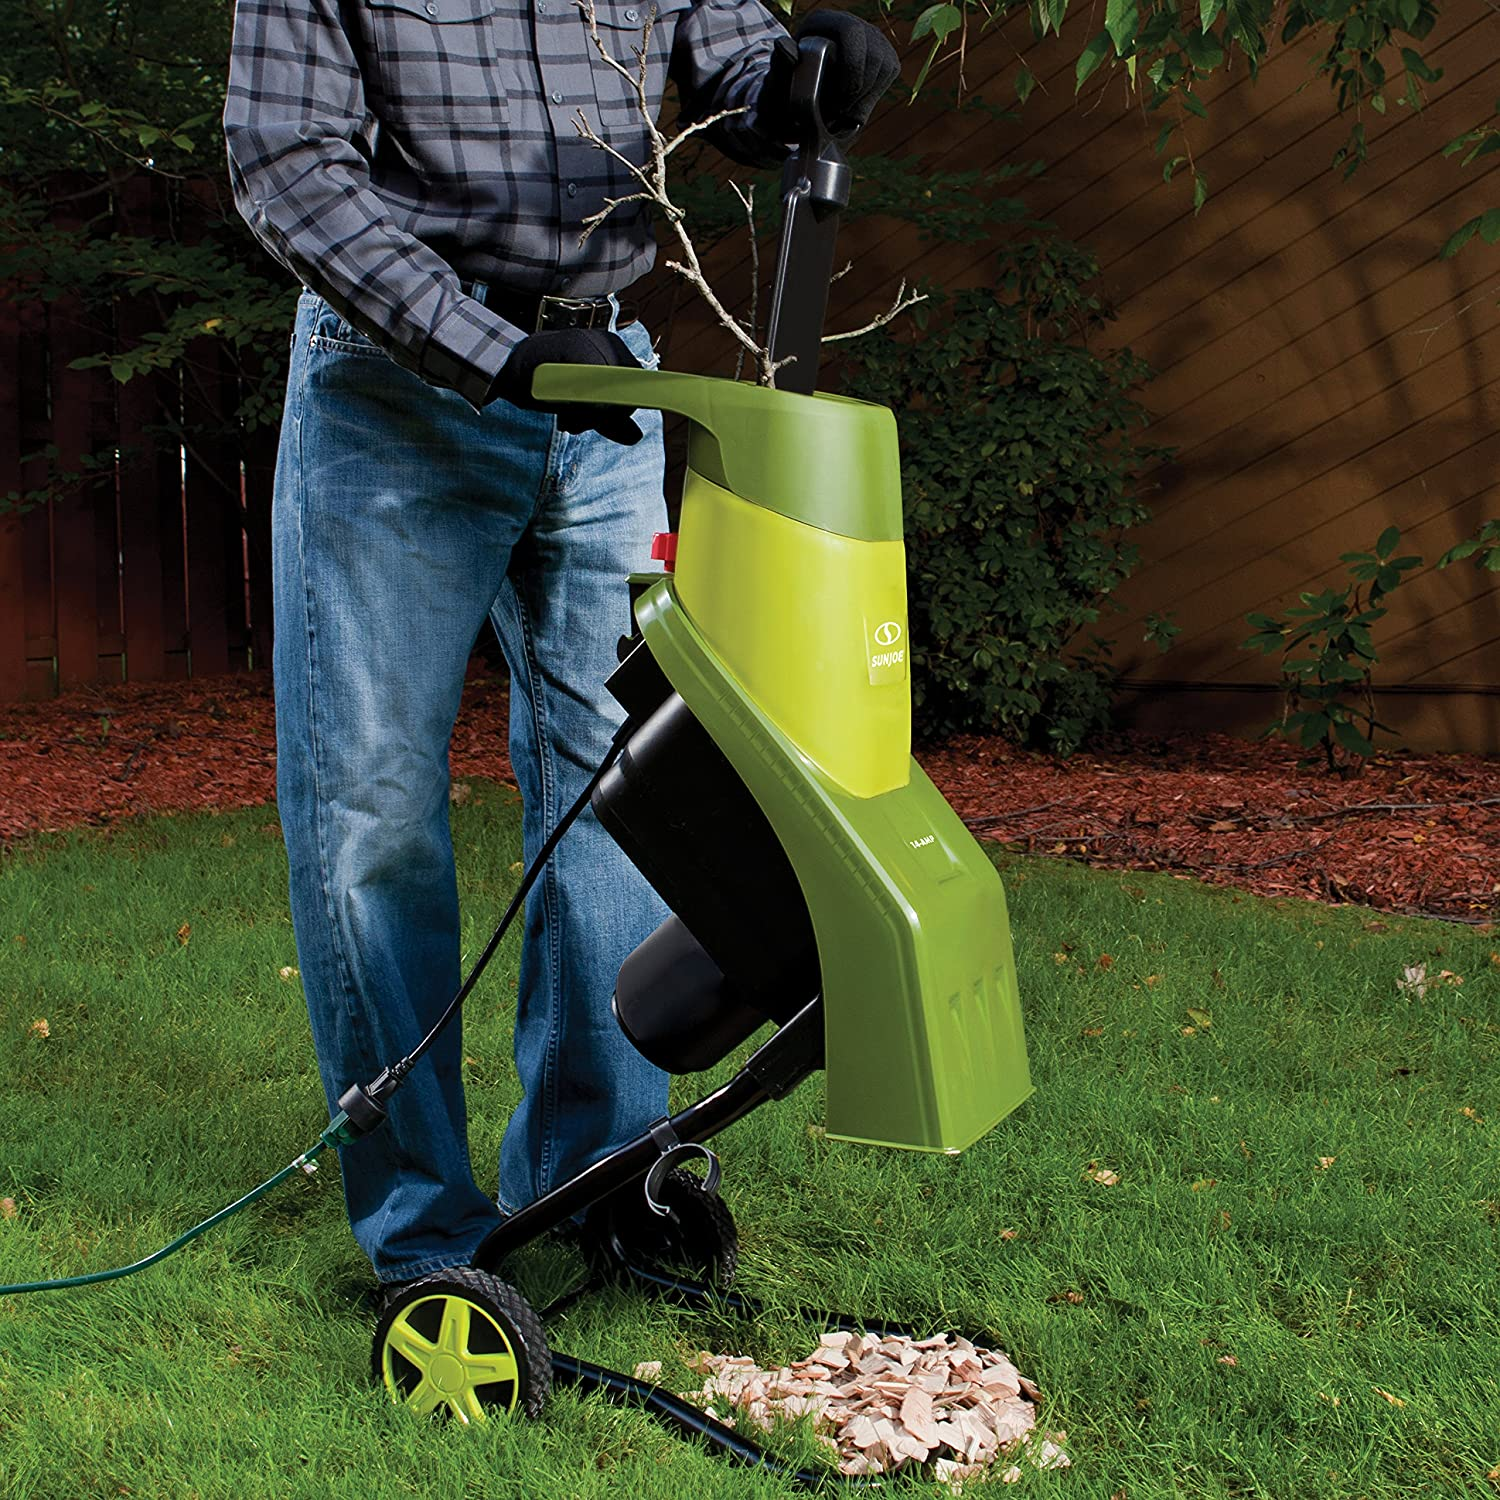 Best leaf vacuum (Blower) - my choice